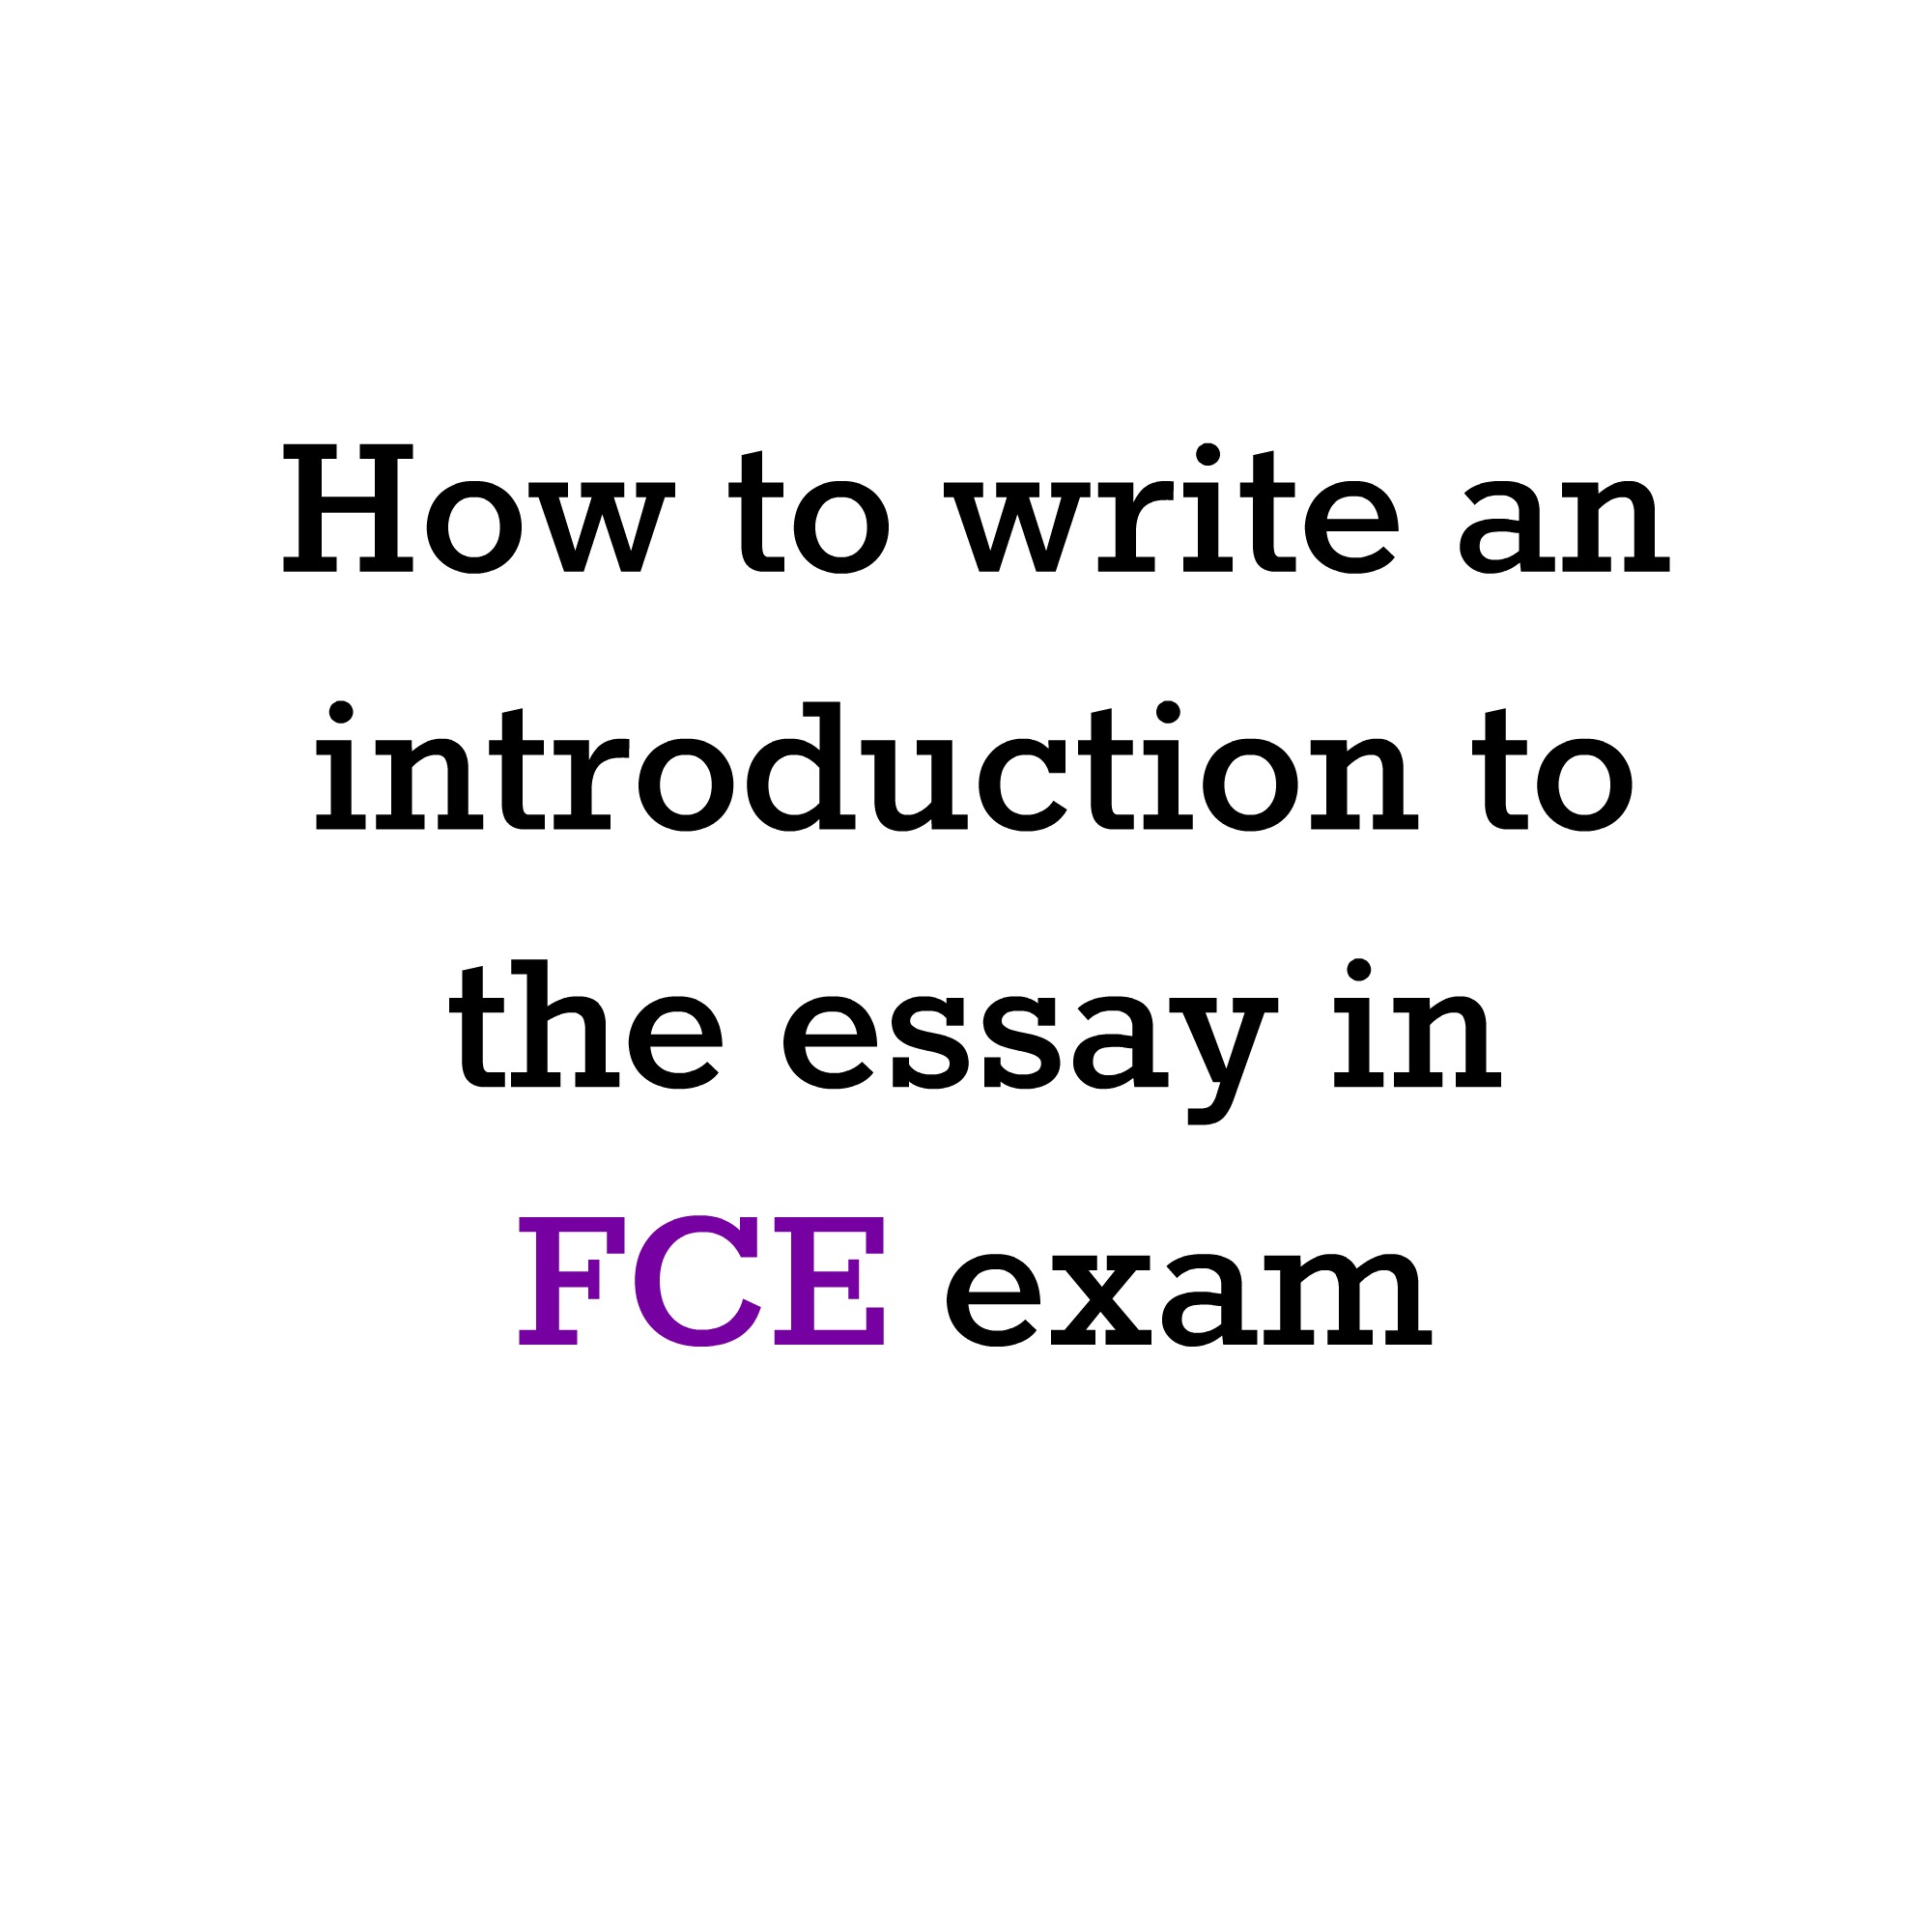 What Is The Thesis Statement In The Essay How To Write An Introduction To The Essay In Fce Exam  English Exam Help Thesis Statement Examples For Narrative Essays also Starting A Business Essay How To Write An Introduction To The Essay In Fce Exam  English Exam  Research Proposal Essay Example